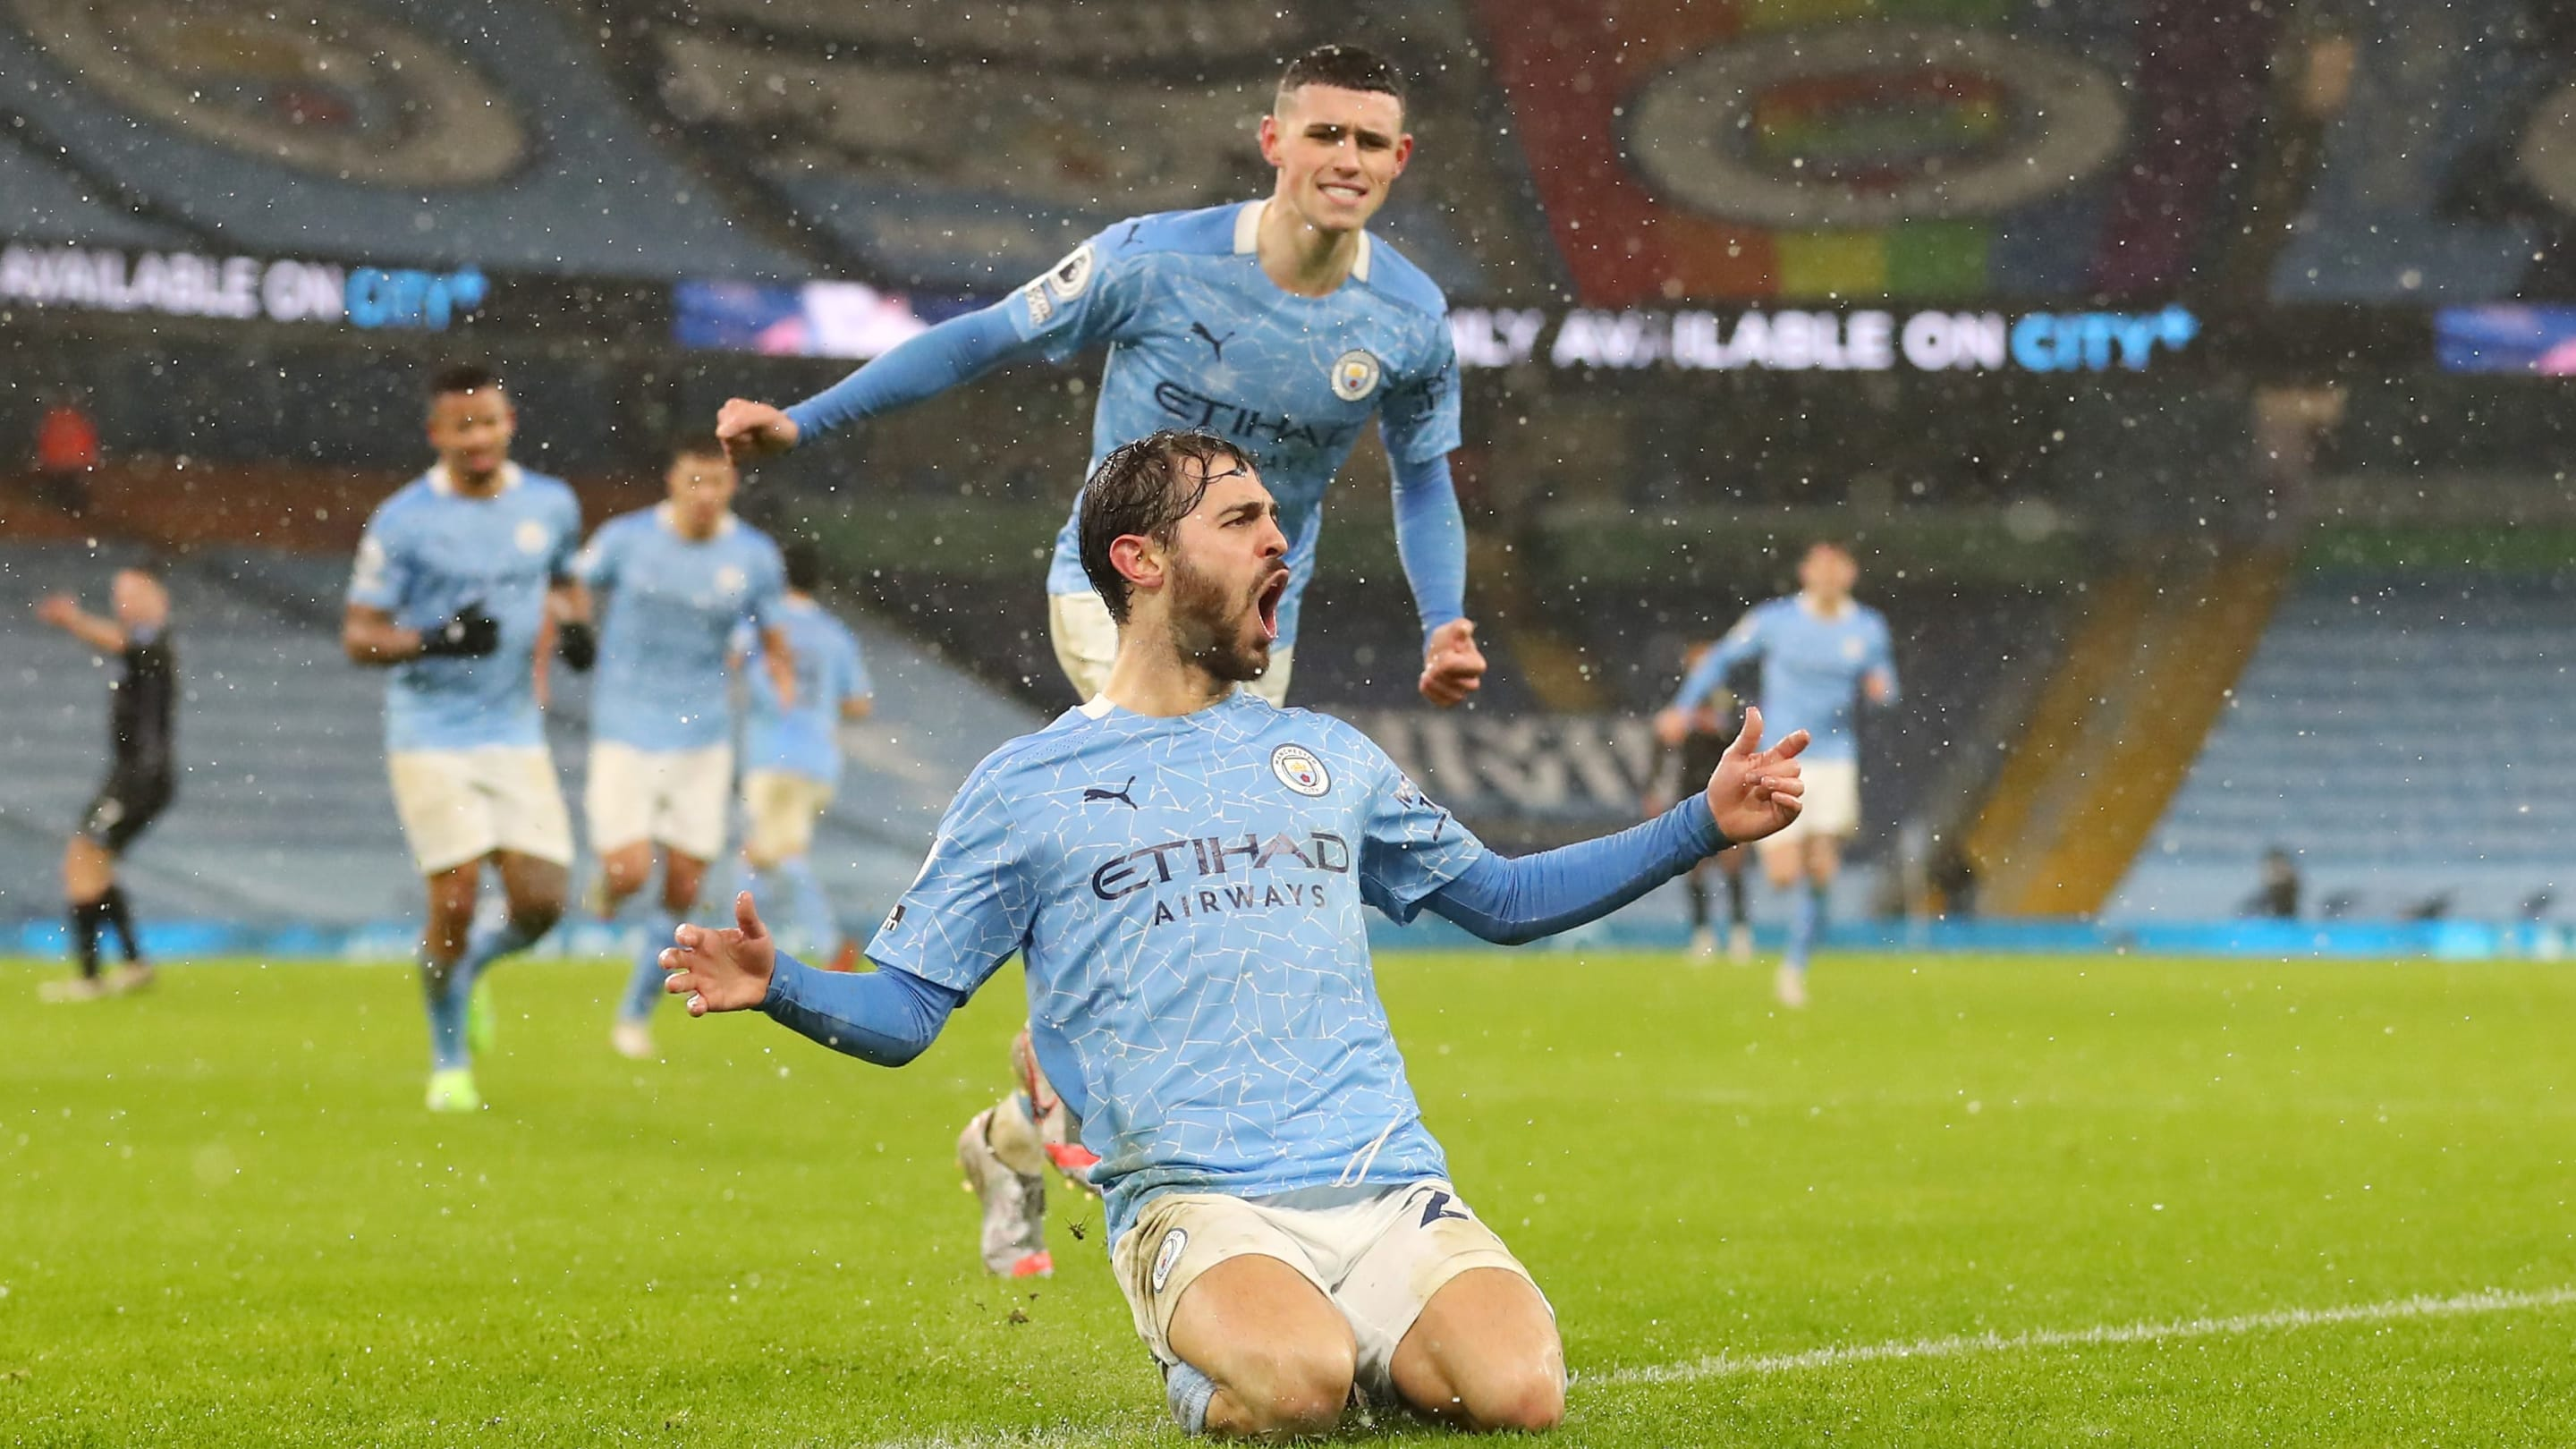 Manchester City 2-0 Aston Villa: Player ratings as Citizens earn crucial Premier League win thumbnail